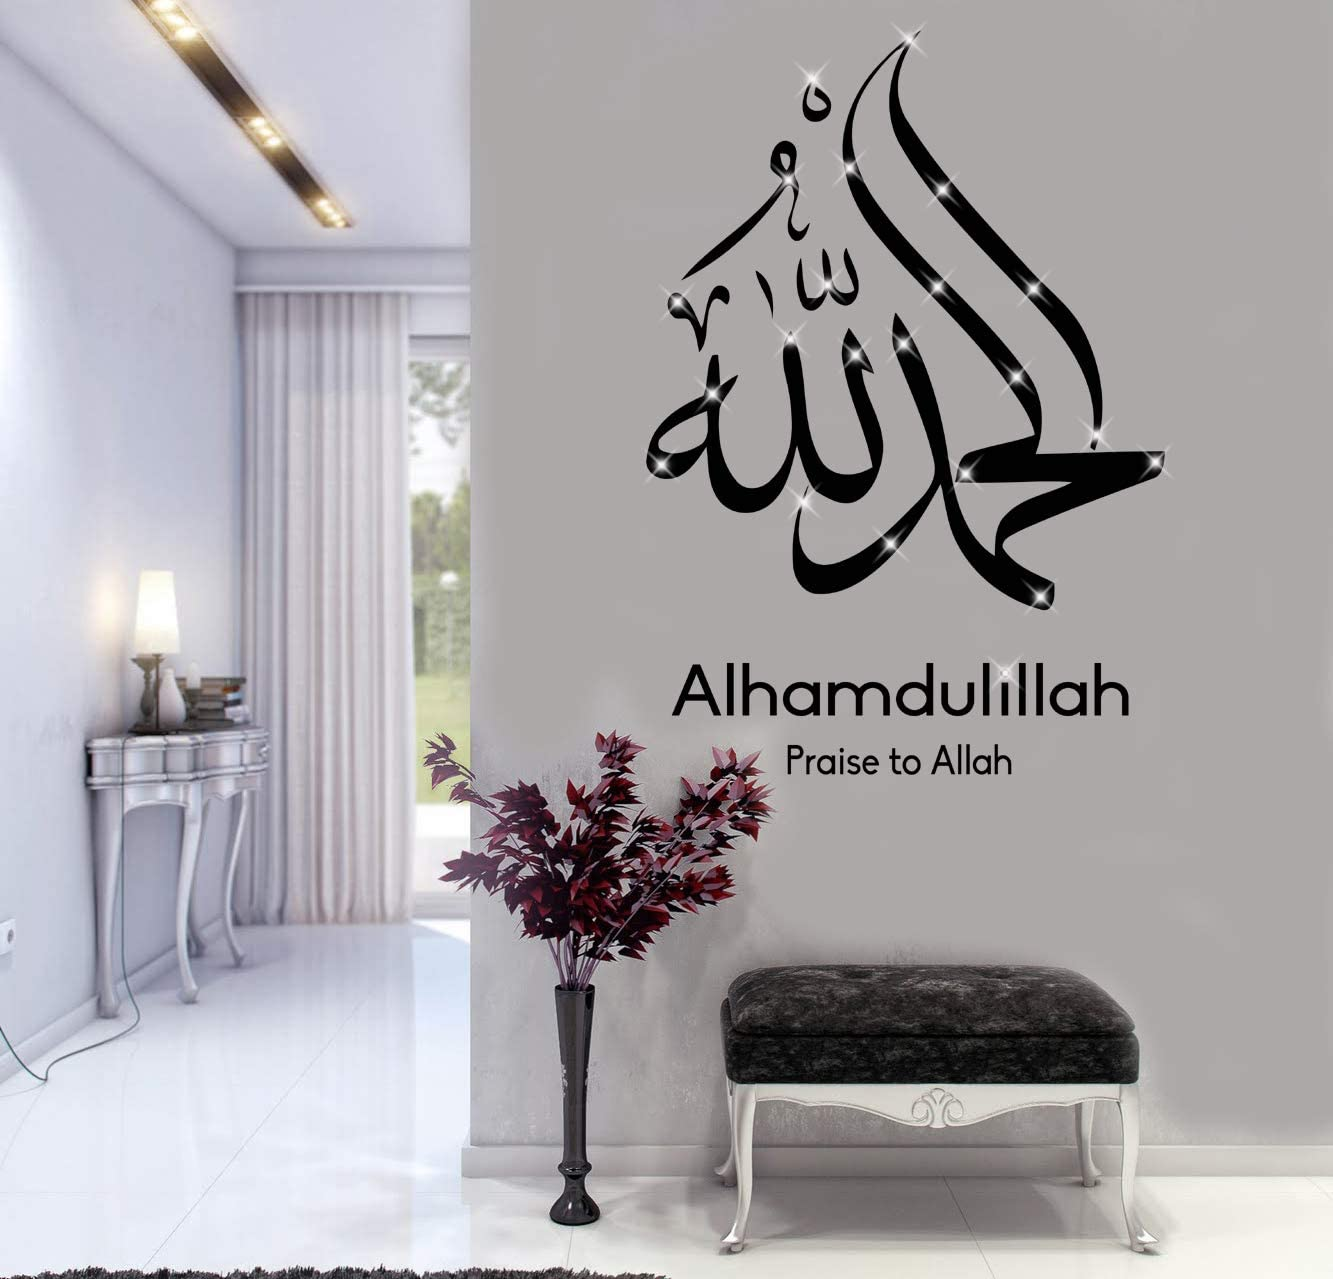 Islamic Wall Stickers Alhamdulillah Praise to Allah Tasbih Islamic Wall Art, Islamic Calligraphy Islamic Decals Murals (Other Colour Message Me After Purchase)